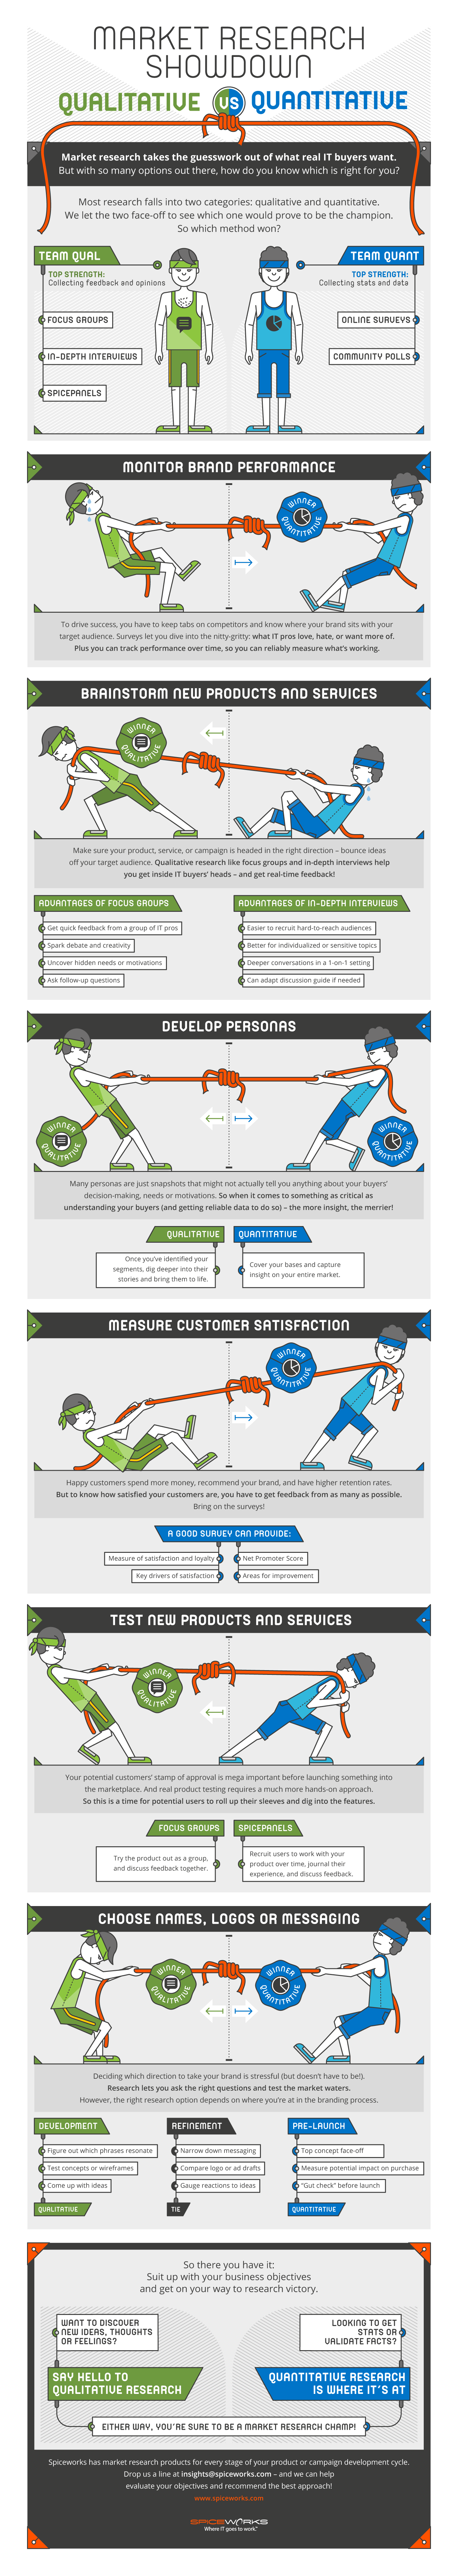 Research Showdown Infographic | Spiceworks | Makemark